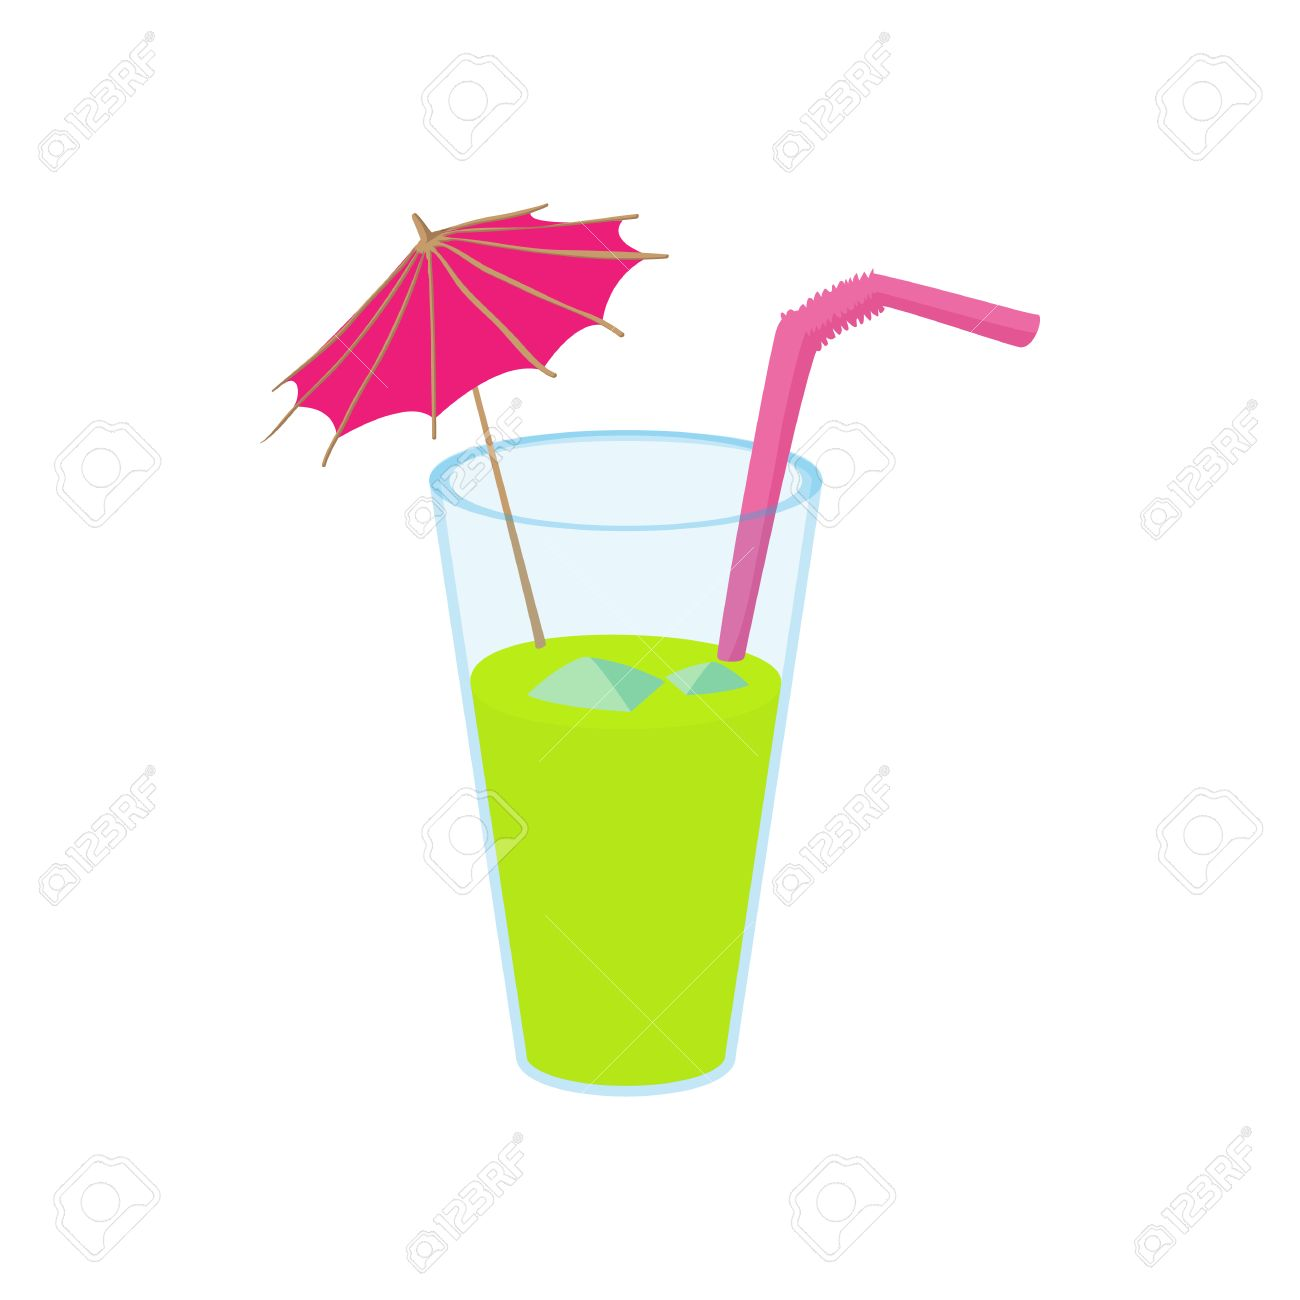 Green Cocktail With Umbrella Icon In Cartoon Style On A White Royalty Free Cliparts Vectors And Stock Illustration Image 54305141